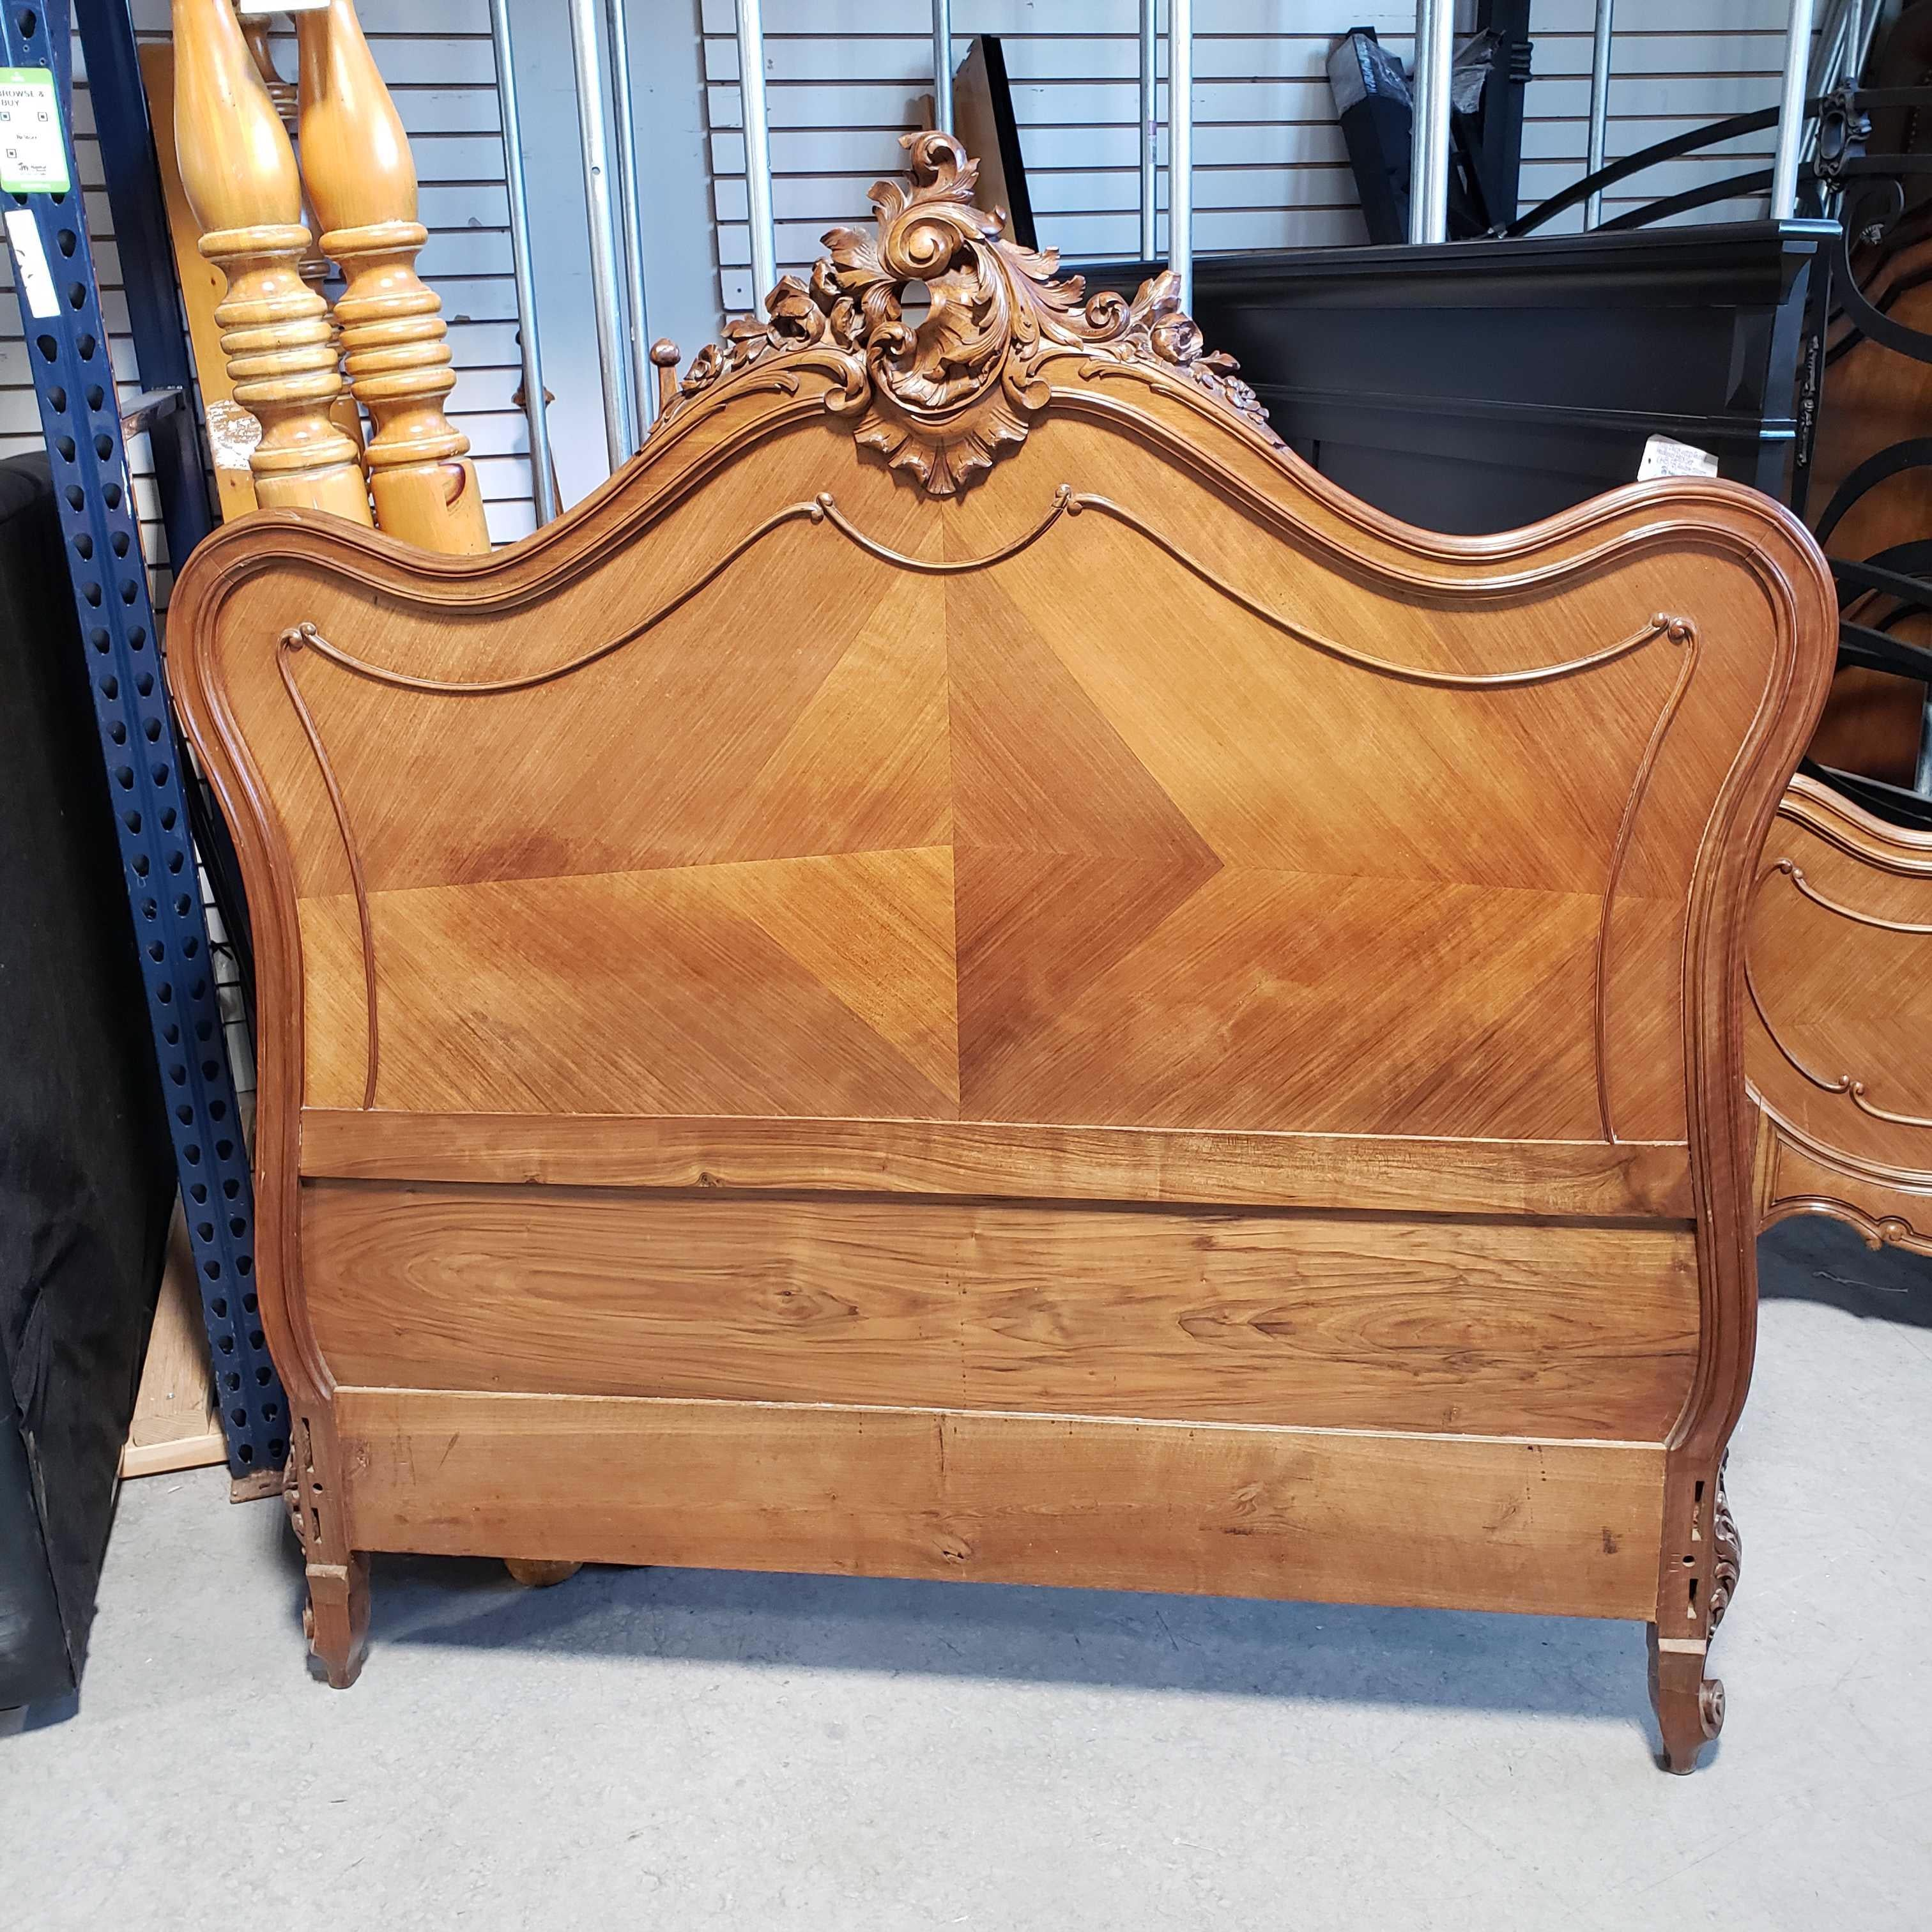 Full Antique Victorian Carved Wood Headboard and Foot Board Only Bed Set